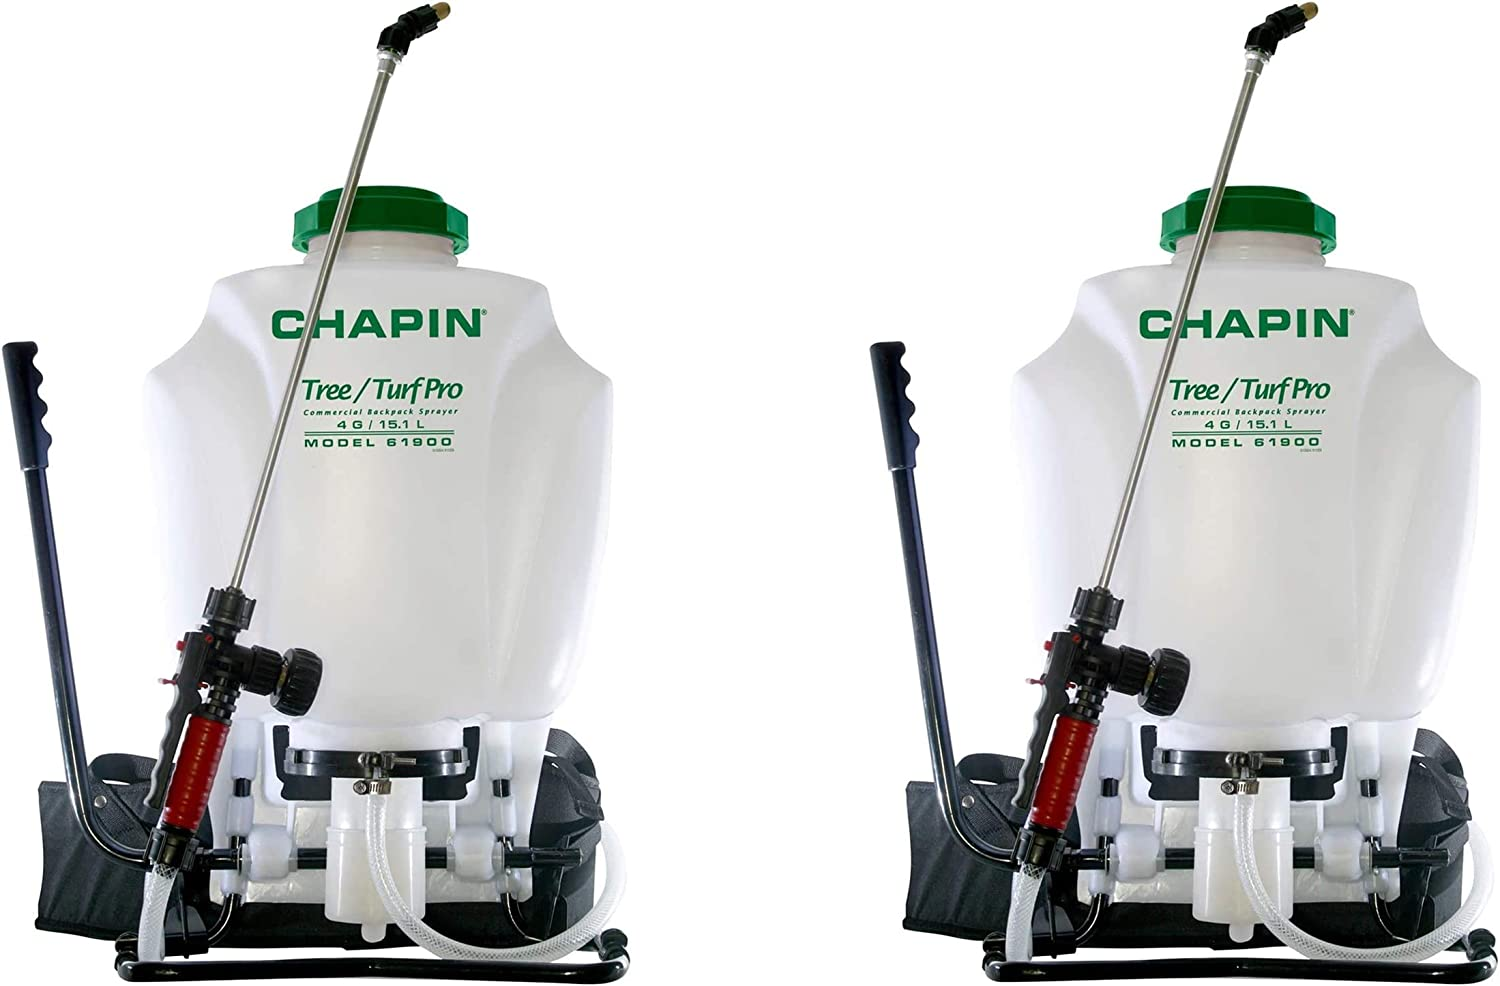 Chapin 61900 4-Gallon Tree and Turf Pro Commercial Backpack Sprayer with Stainless Steel Wand